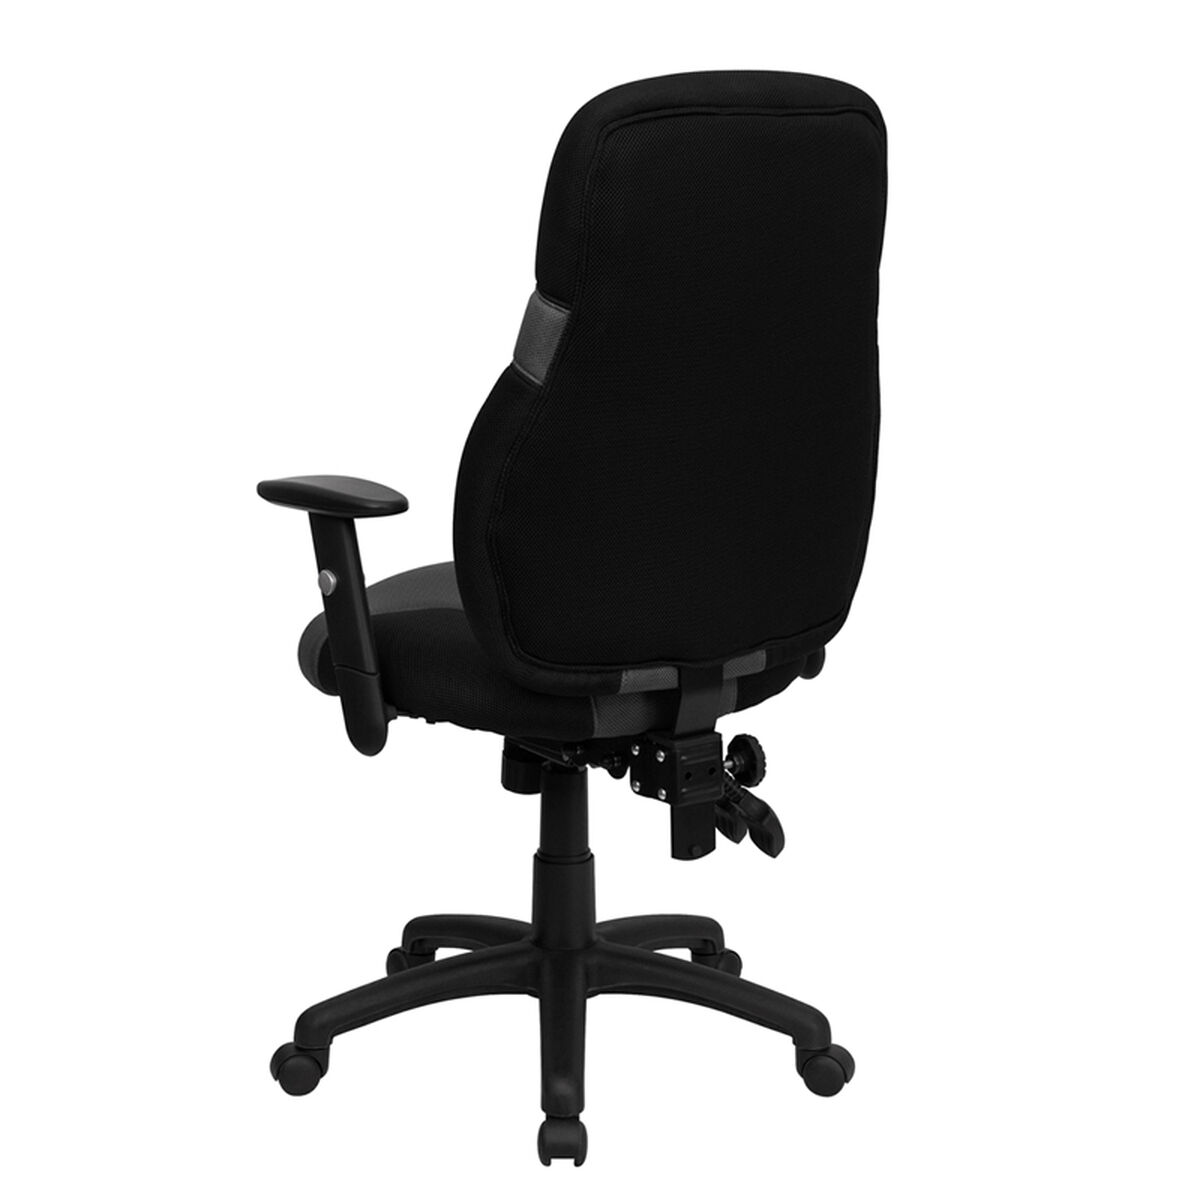 black gray high back chair bt 6001 gybk gg bizchair com